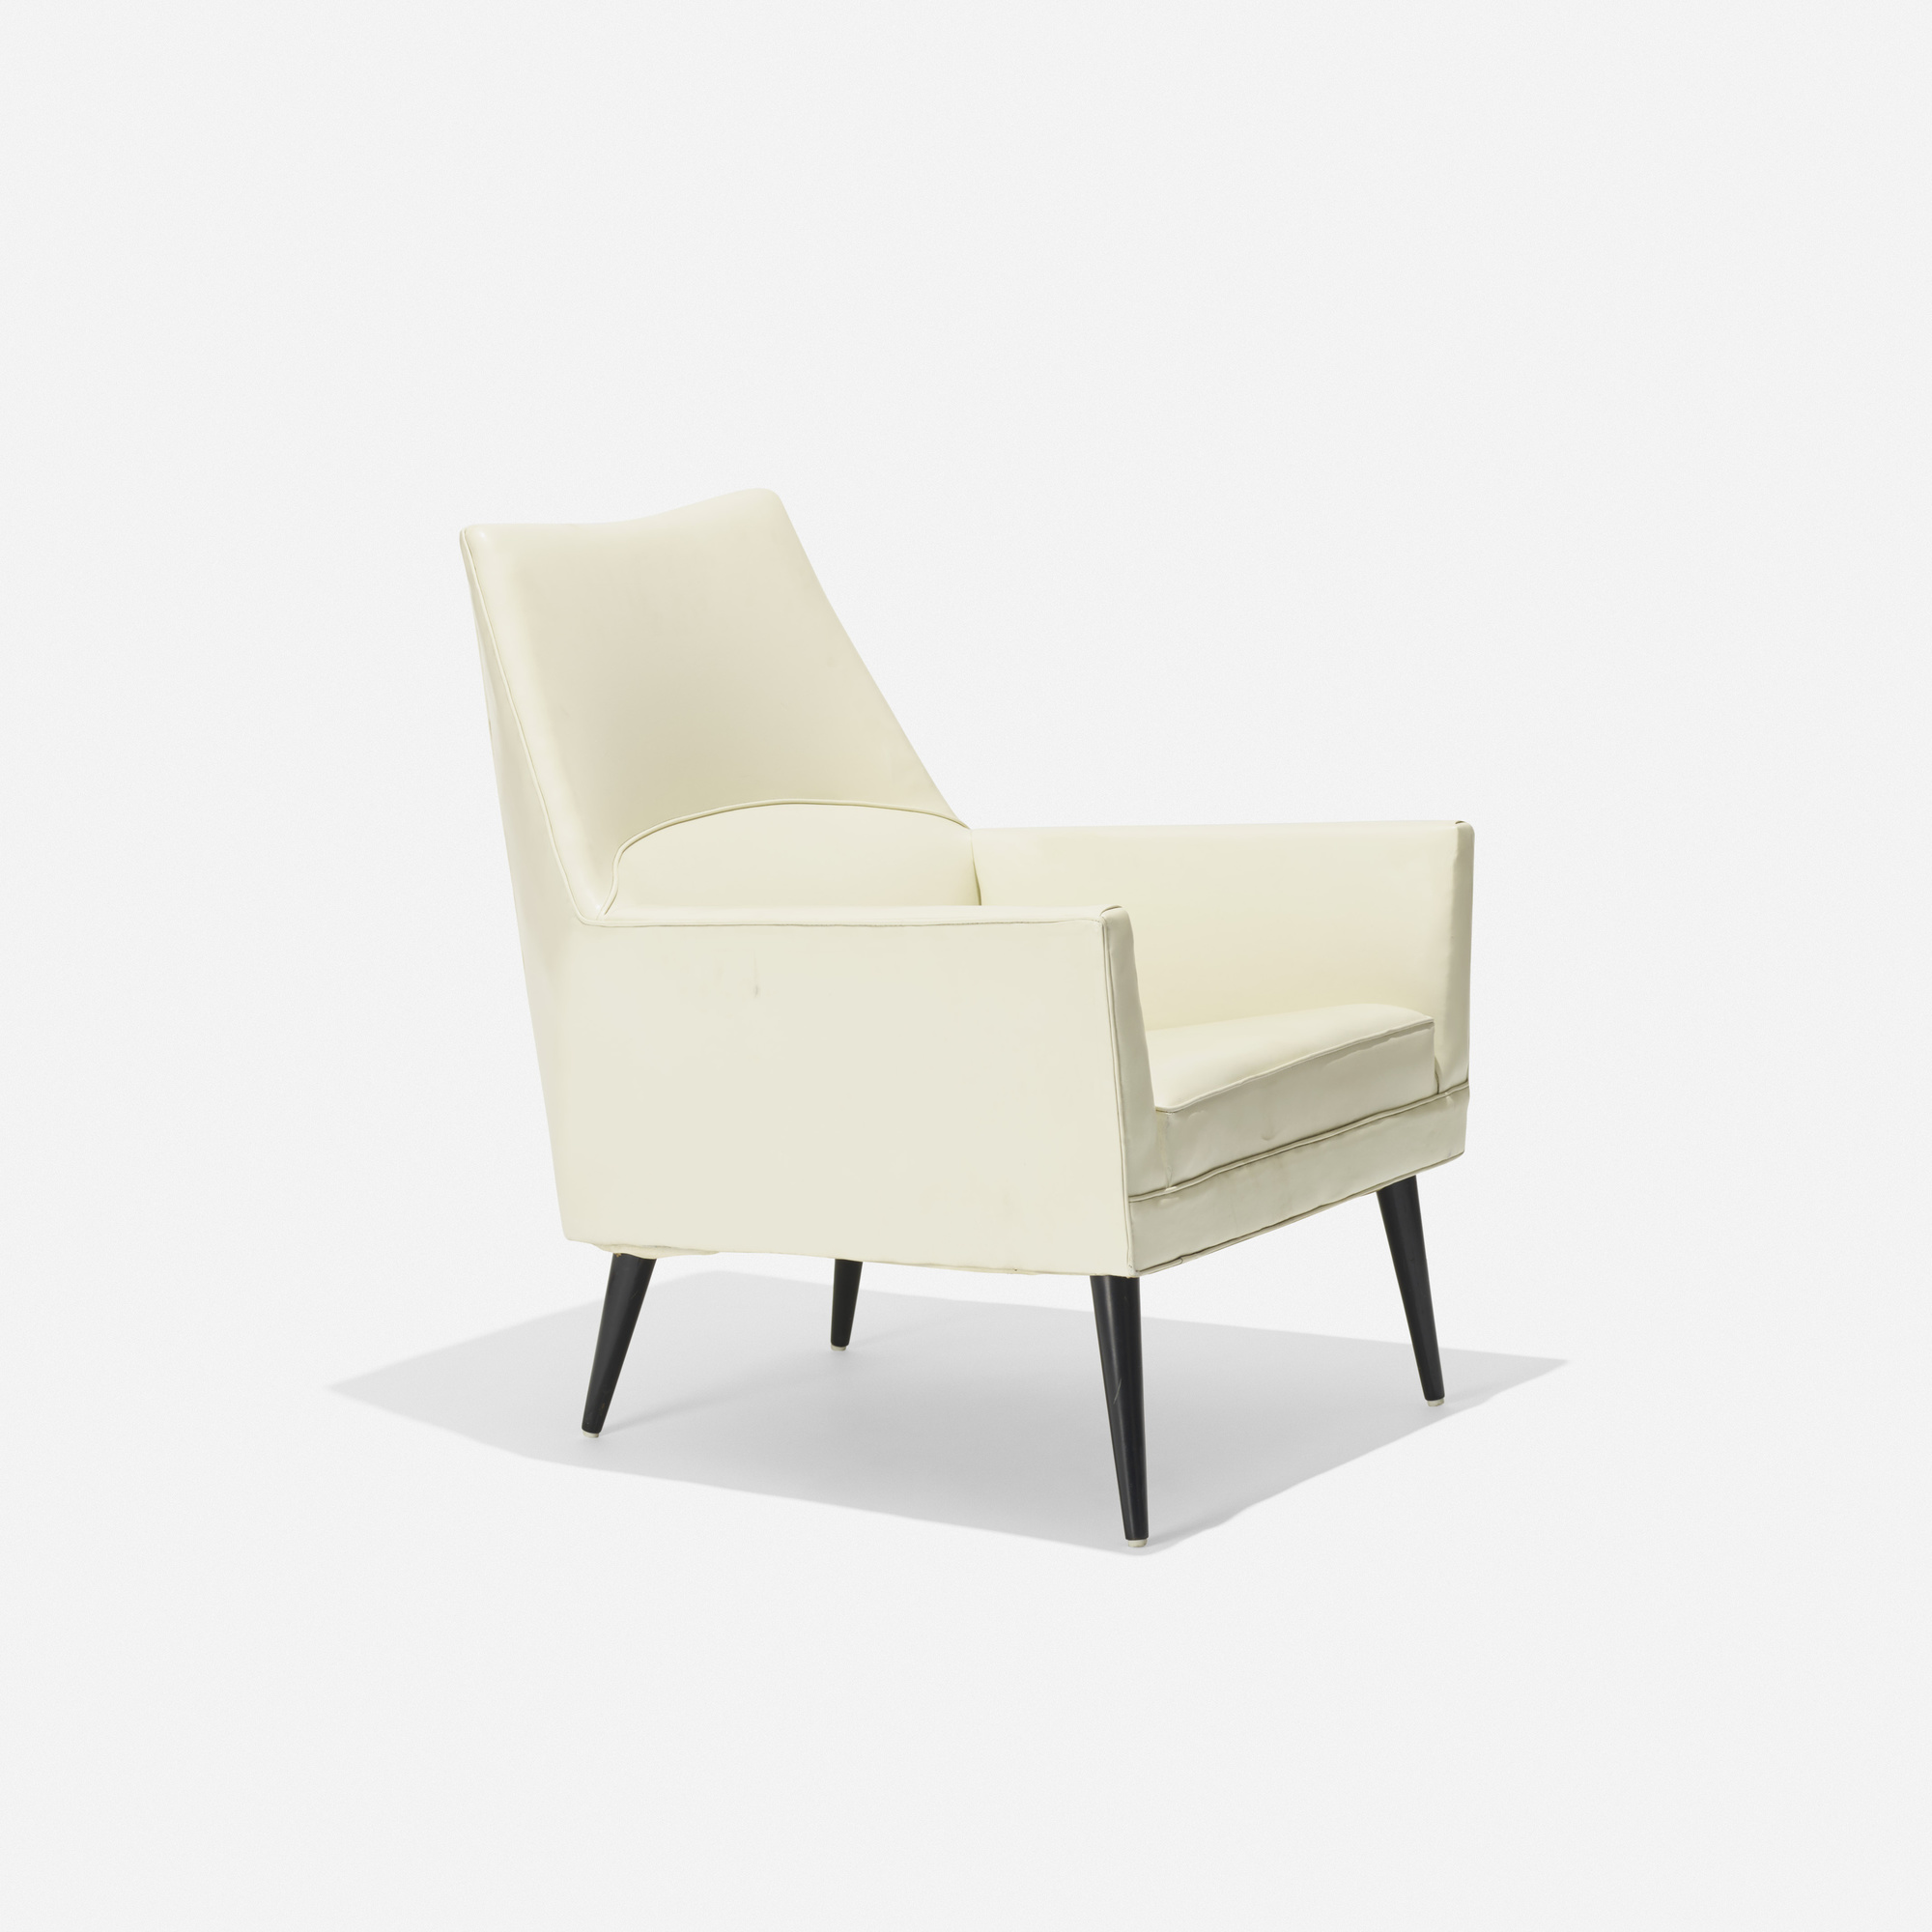 234: Paul McCobb / Squirm Lounge Chair, Model 3042 (1 Of 3)